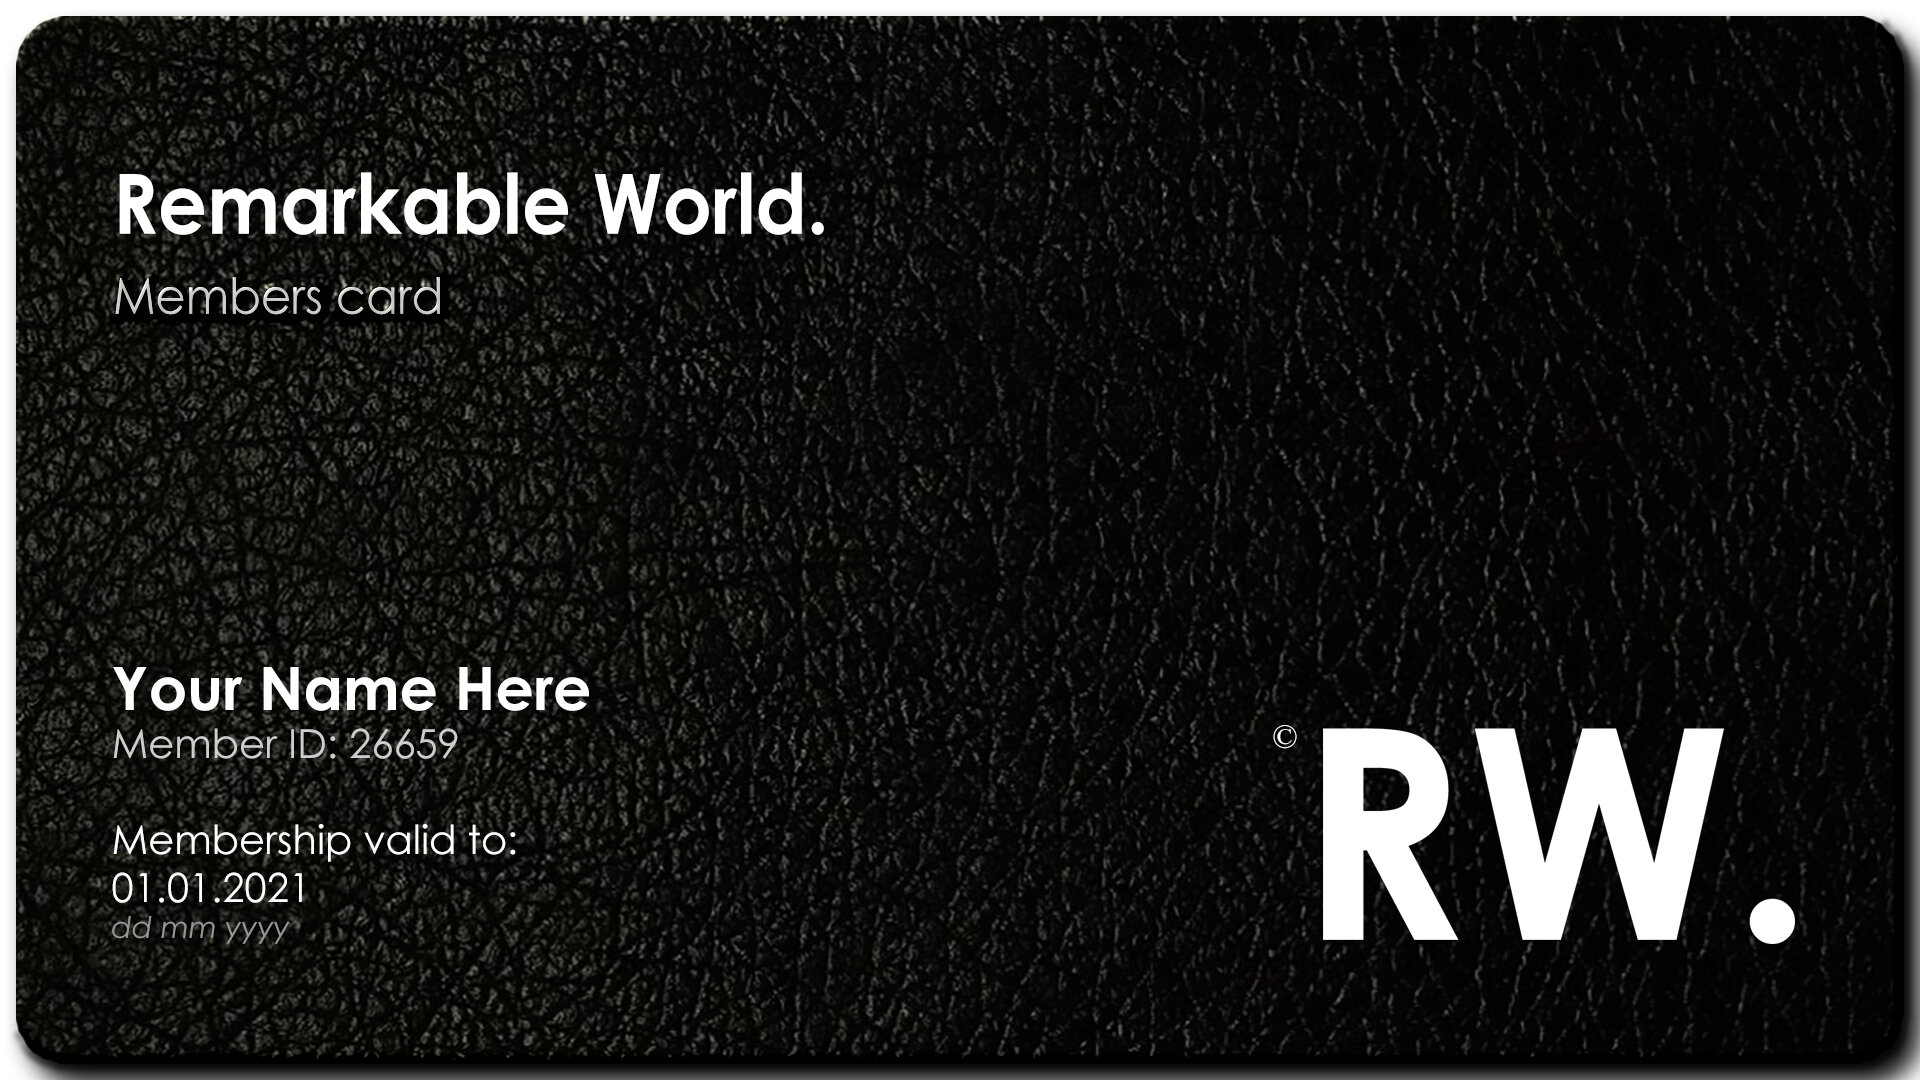 - Member's Card is by invitation only.✓ One Year Membership✓ Access to RW. App✓ Guest-speaker RW. breakfast events hosted by key individuals at the top of their industry✓ RW. lunches in Stockholm and other key Nordic and European cities✓ RW. events & Take-overs✓ Thought Leadership breakfast events hosted by entrepreneurs (females only)✓ Access to our Private LinkedIn Group✓ Weekly Newsletter✓ Access Exclusive Offers & Experiences✓ Gala invitation